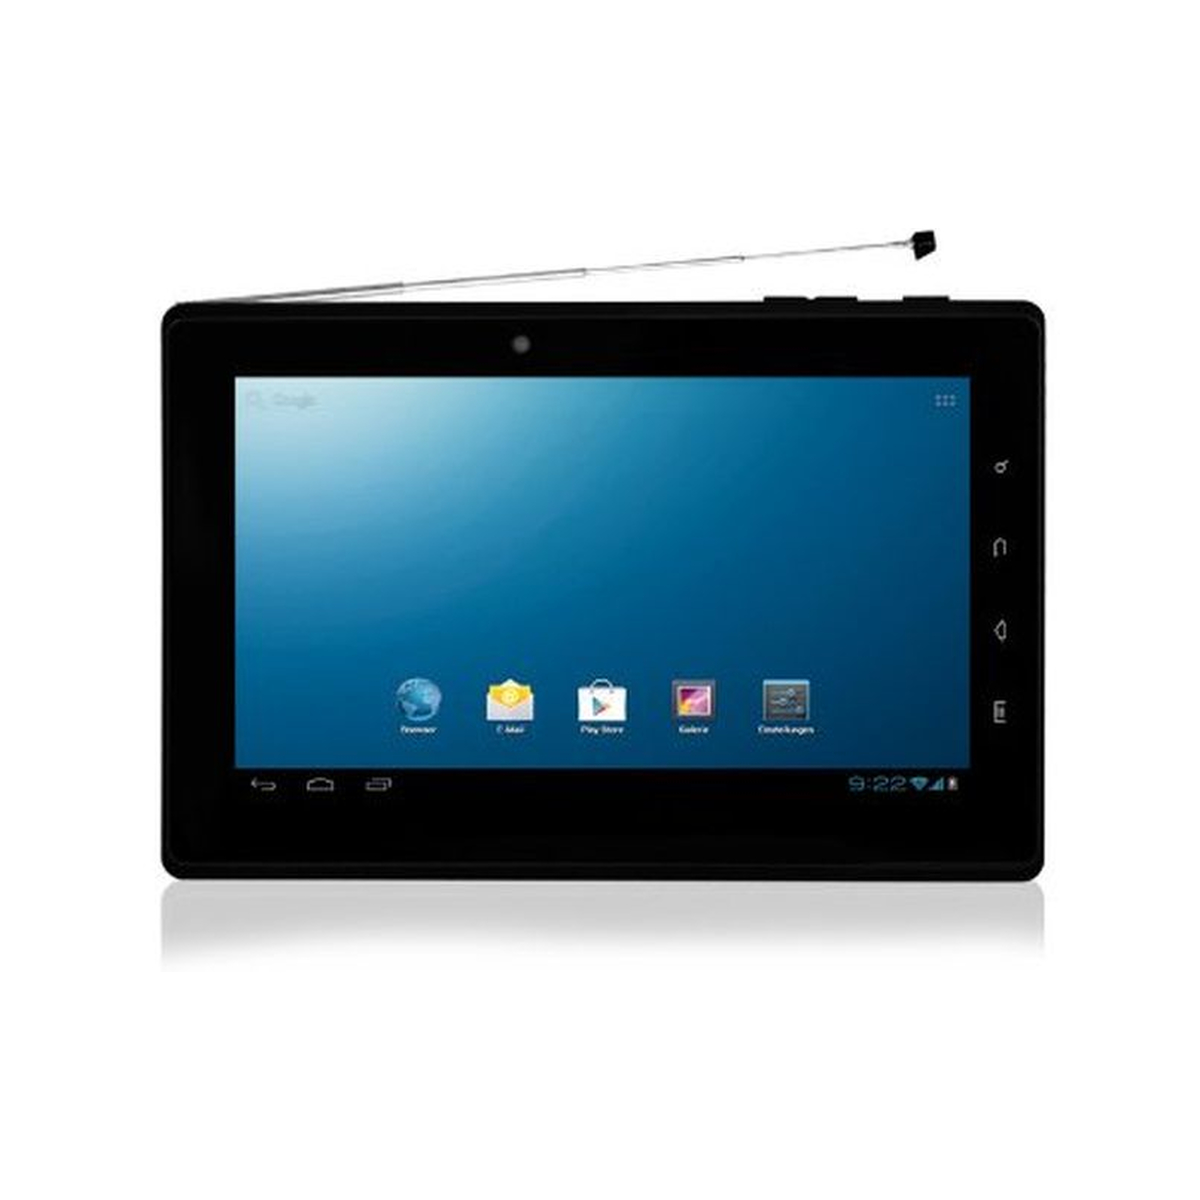 Blaupunkt Endeavour TV seven 7 Tablet PC Android DVB-T #gut